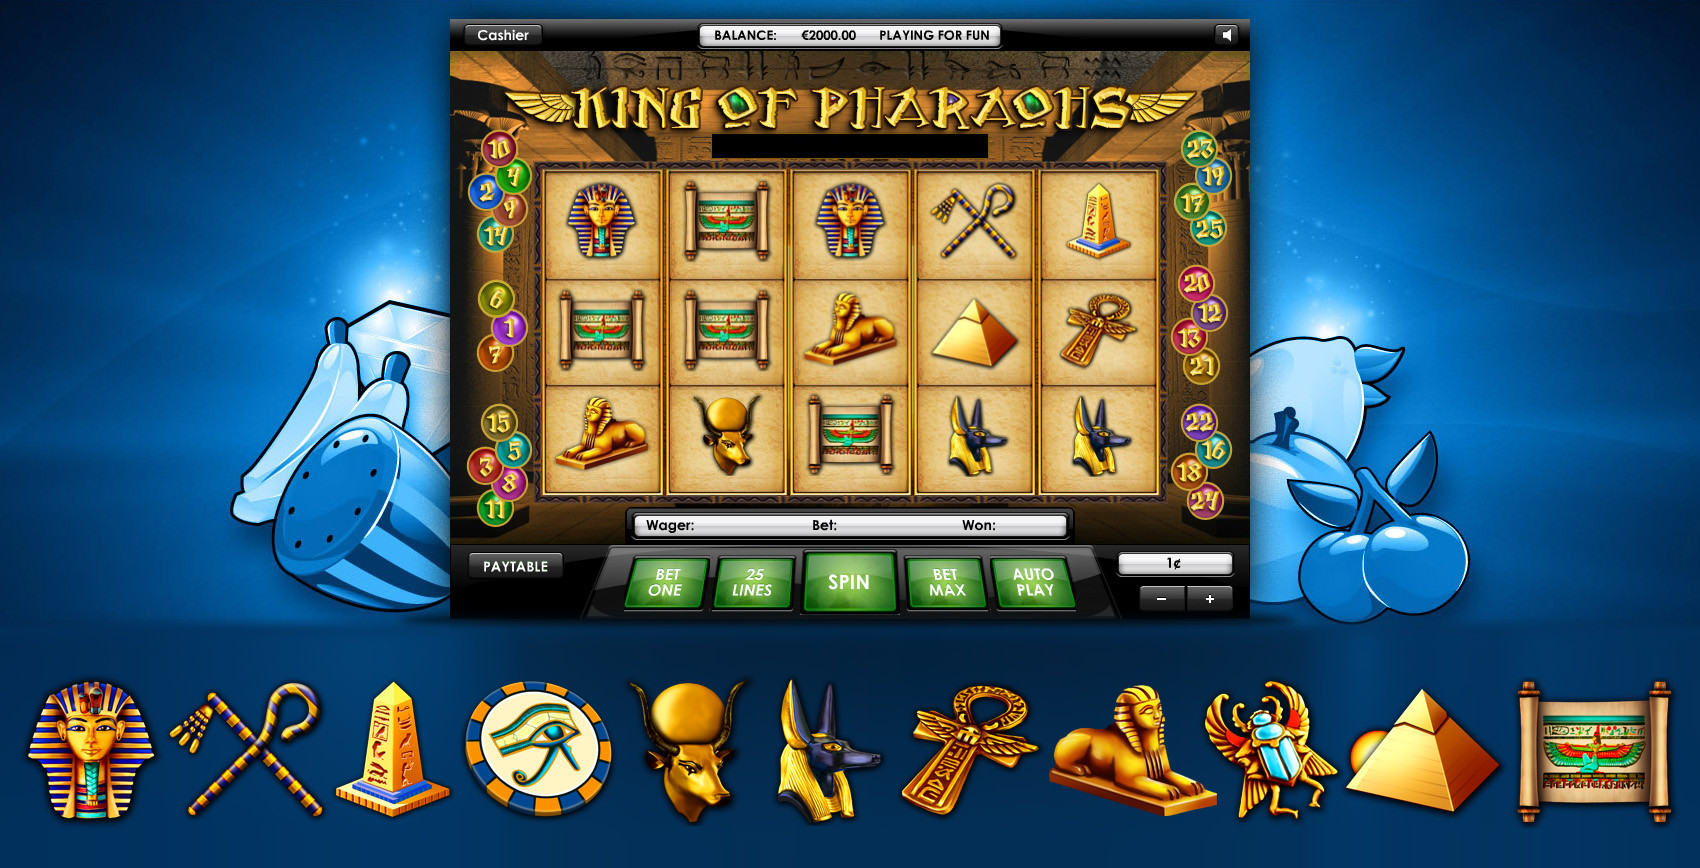 ArtStation - UI Design for Online Casino slot machine game, Anton Cermak